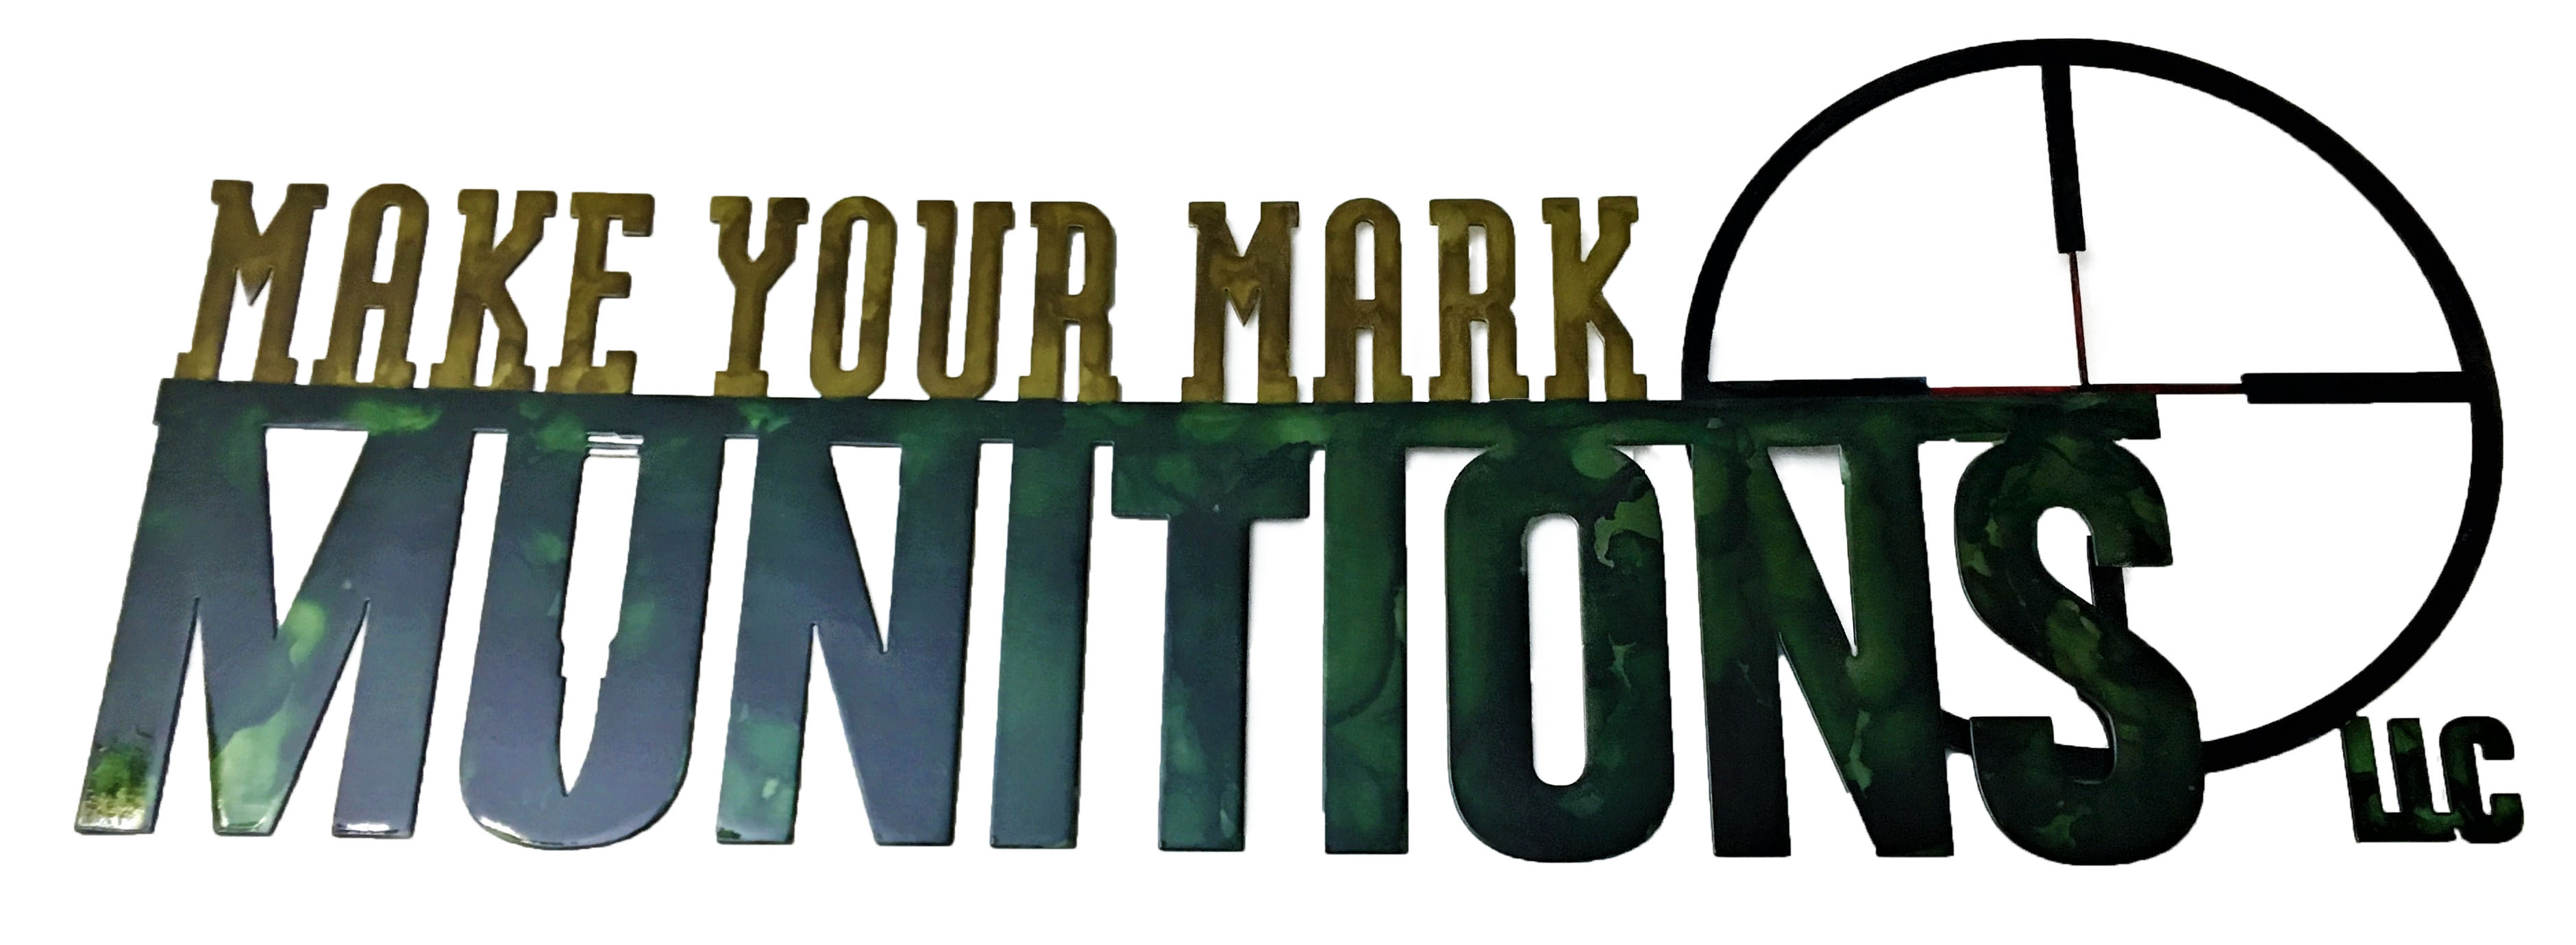 Make Your Mark Munitions Logo_Custom